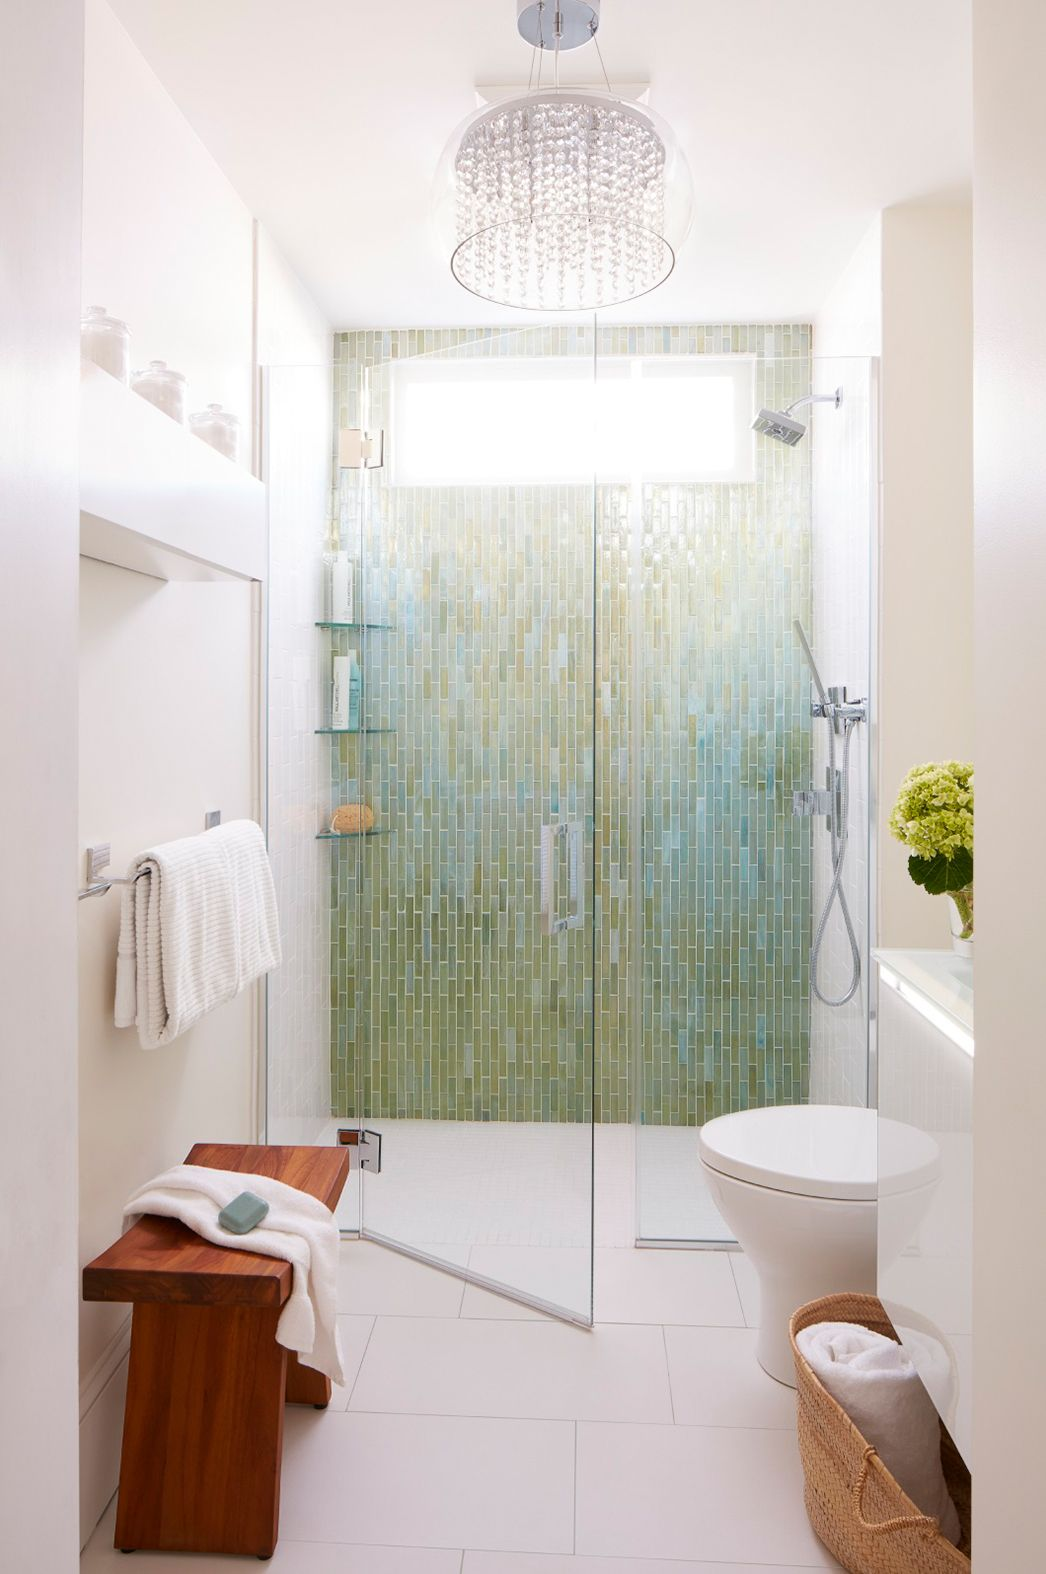 Zero Threshold Curb Free Shower Works In Even Small Spaces With